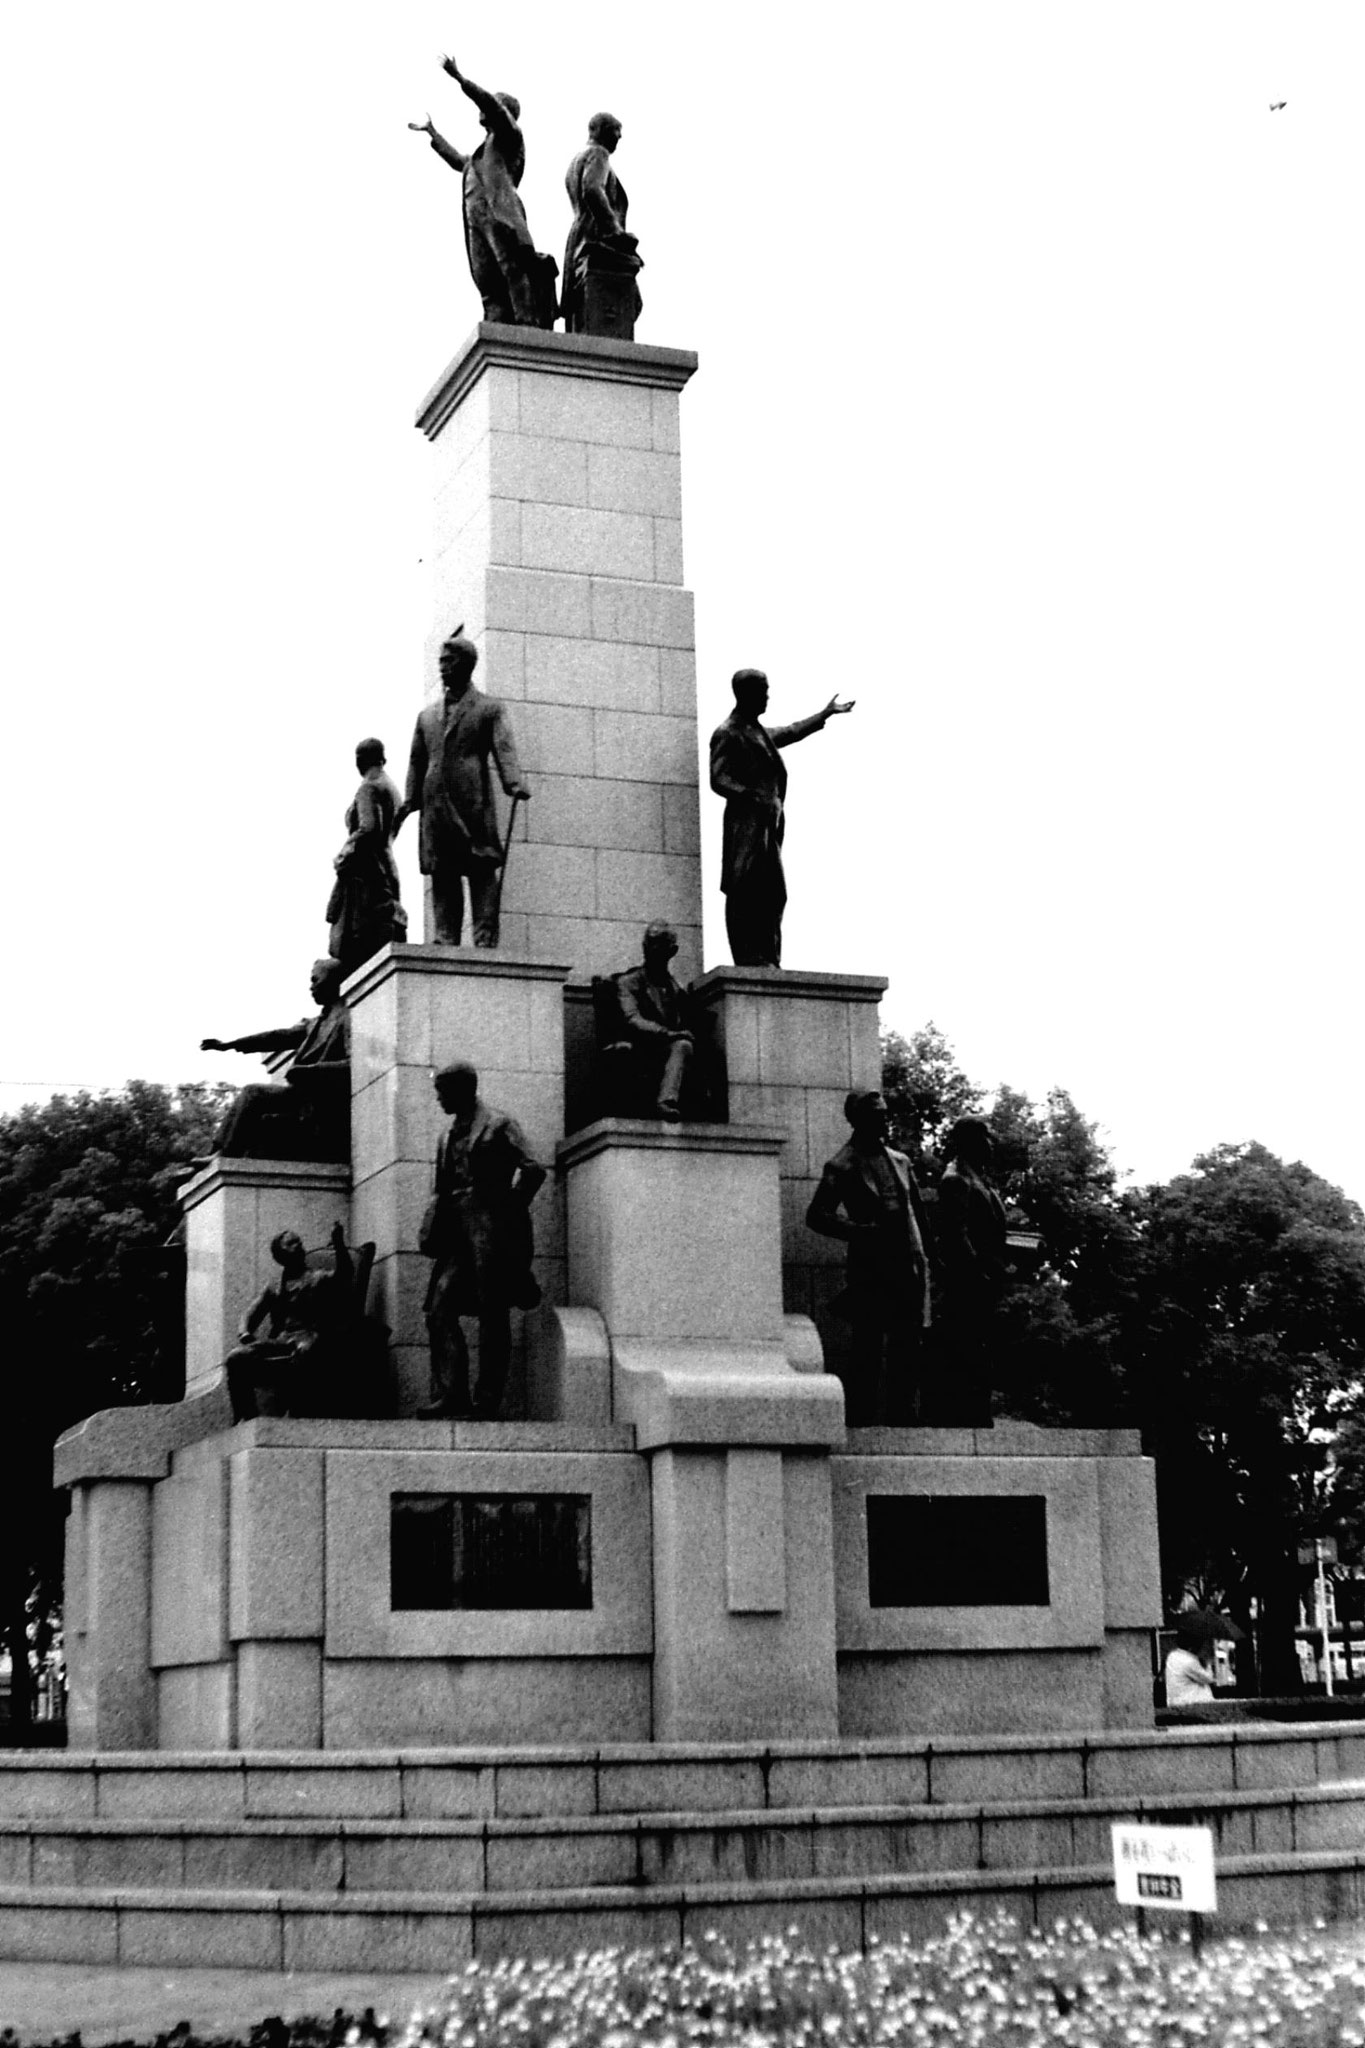 20/1/1989: 27: memorial to the men sent to Europe to study in 1868